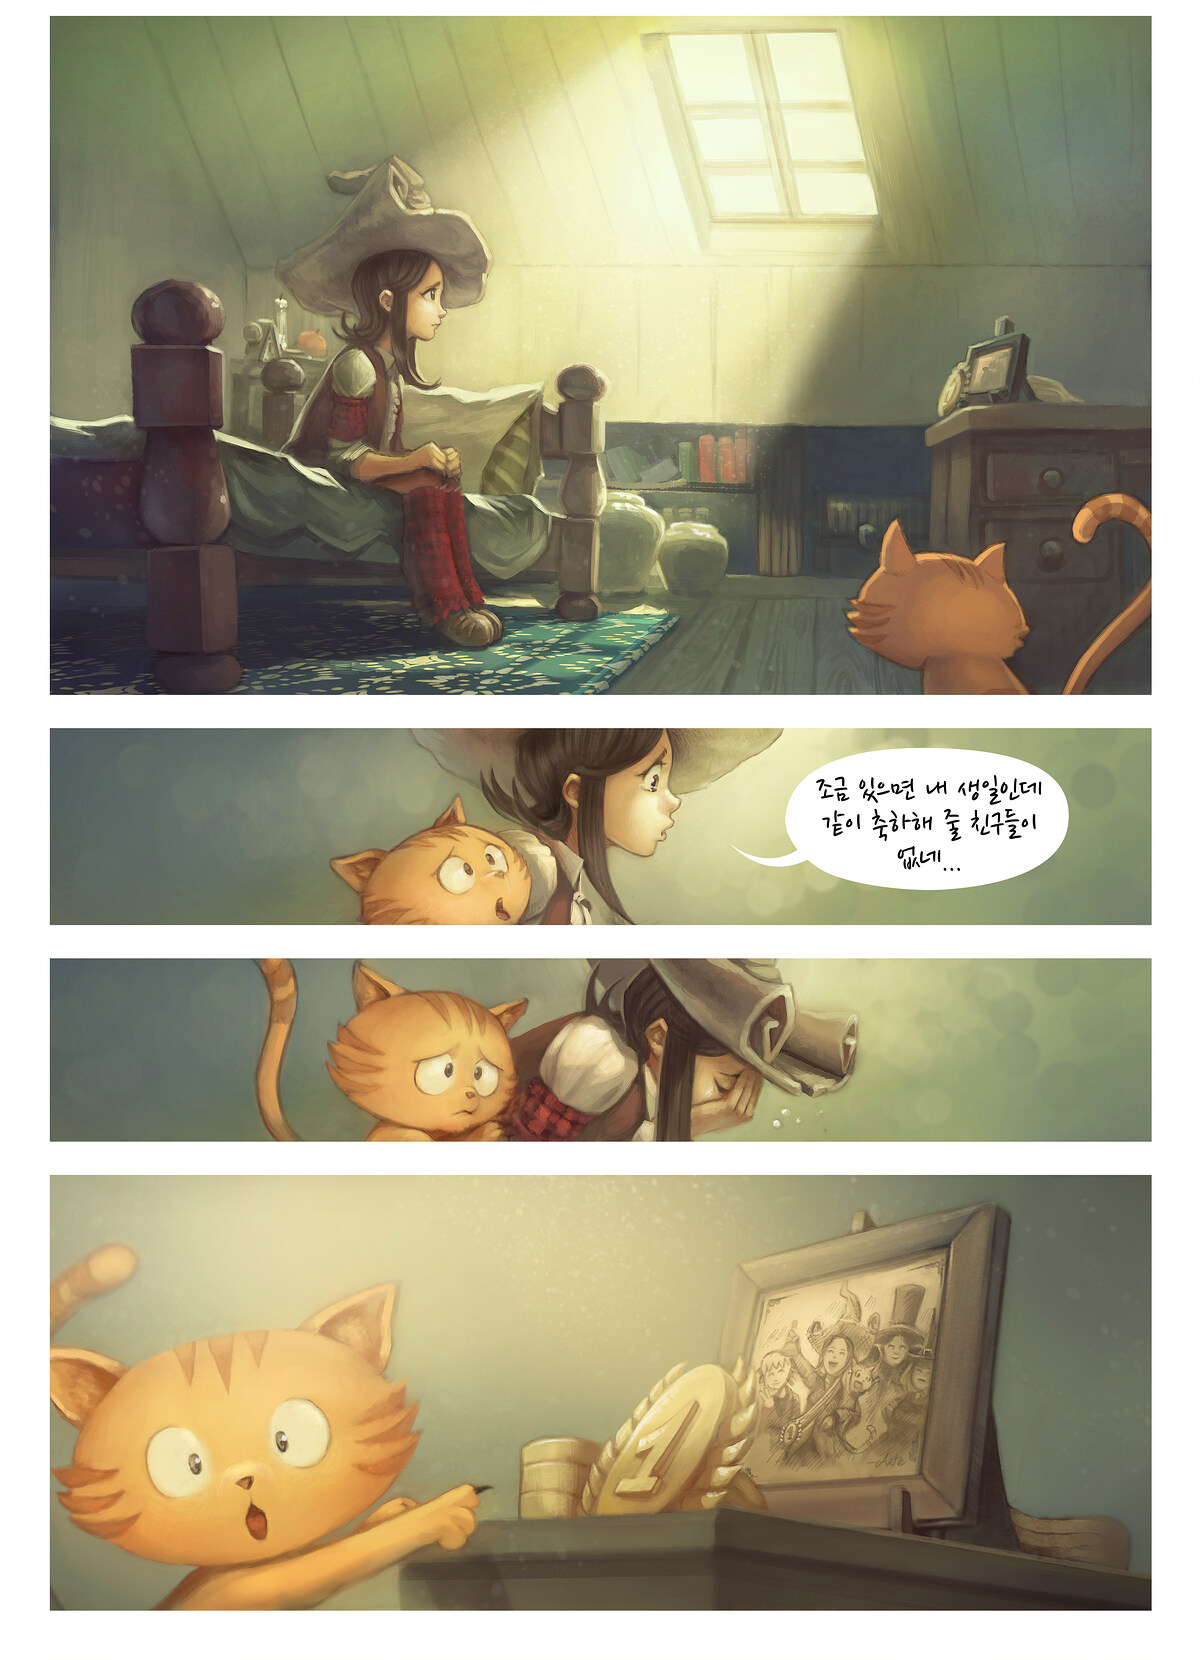 A webcomic page of Pepper&Carrot, 에피소드 8 [kr], 페이지 1